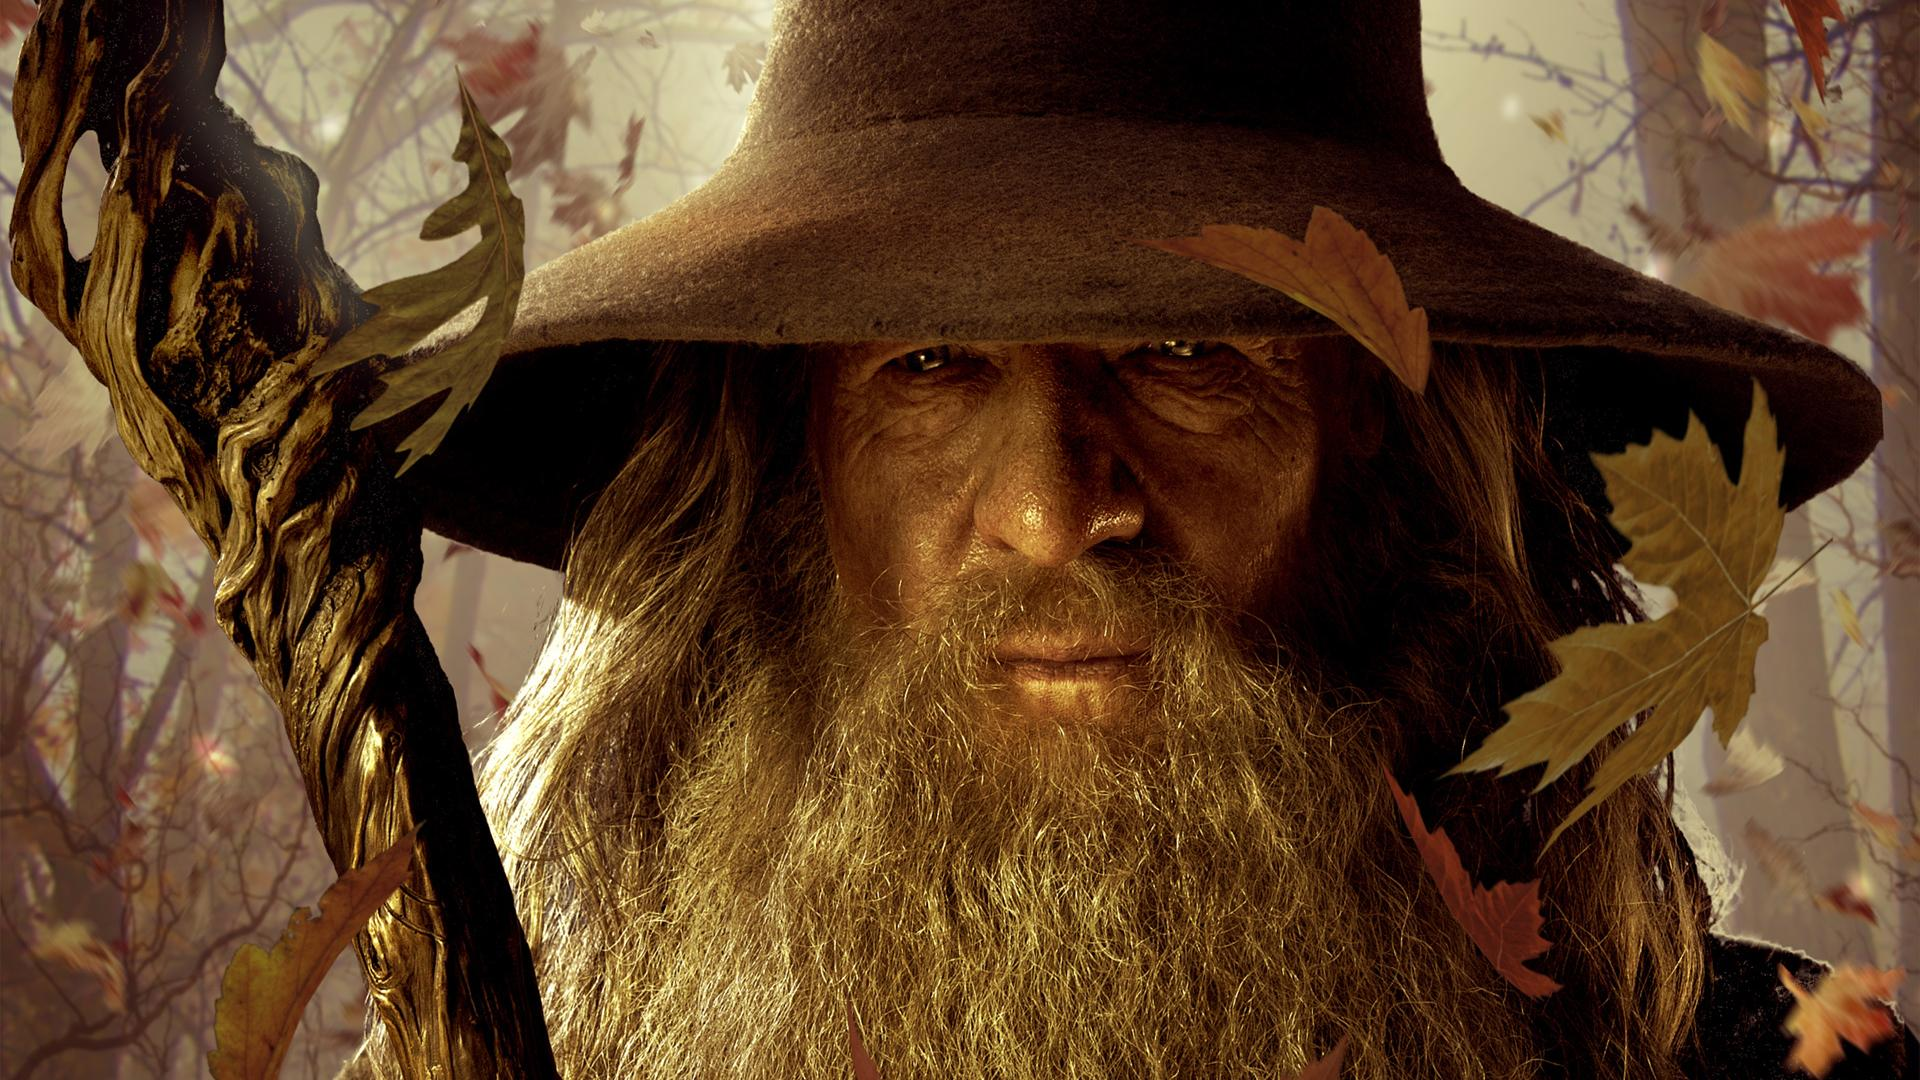 What Made Ian McKellen So Upset He Almost Quit The Hobbit Trilogy